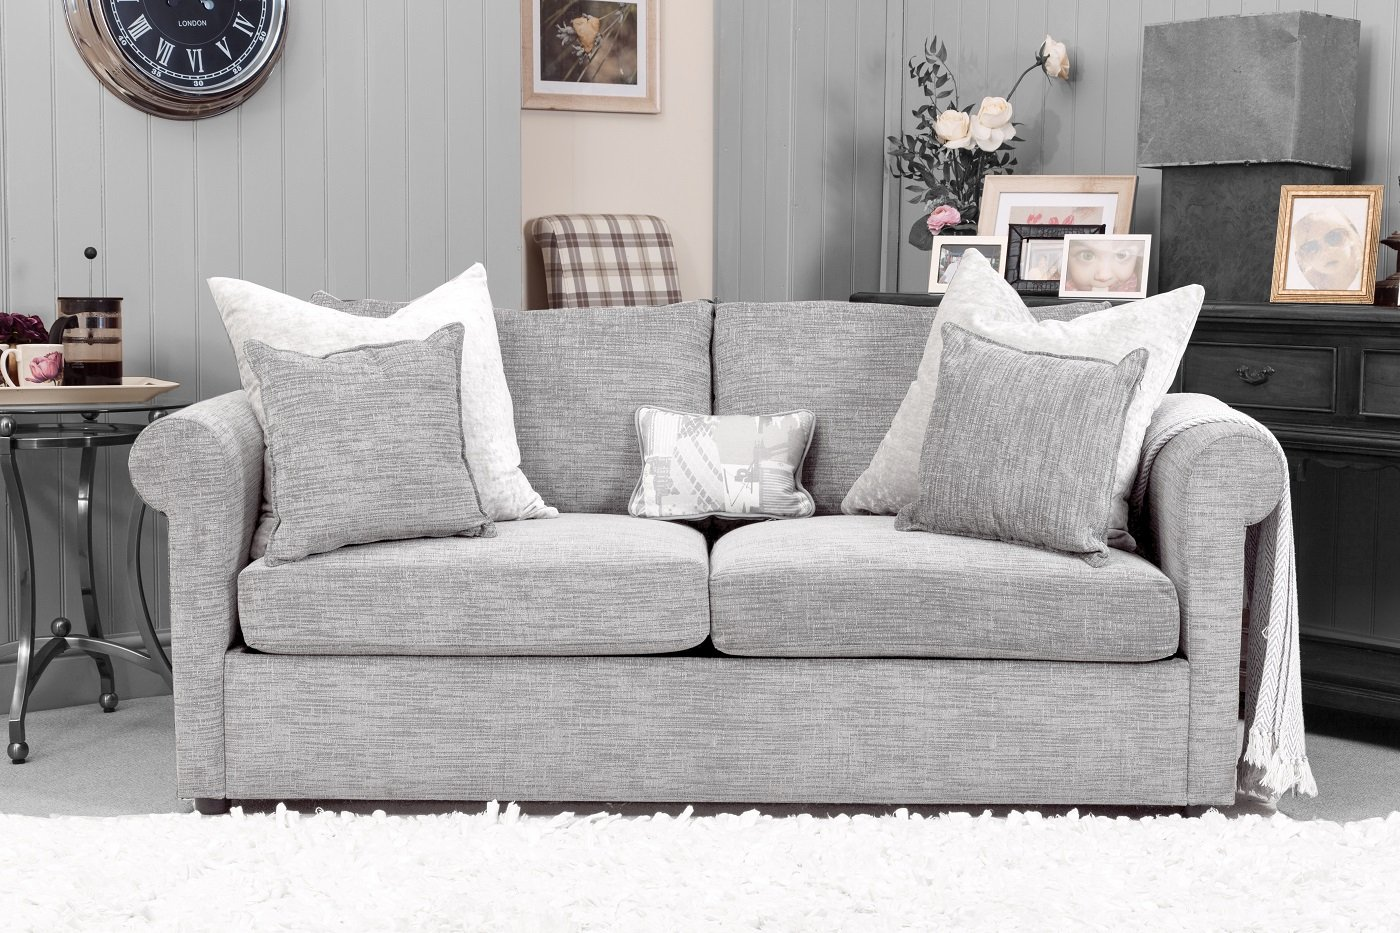 JBS London Sofa Front Facing Dressed